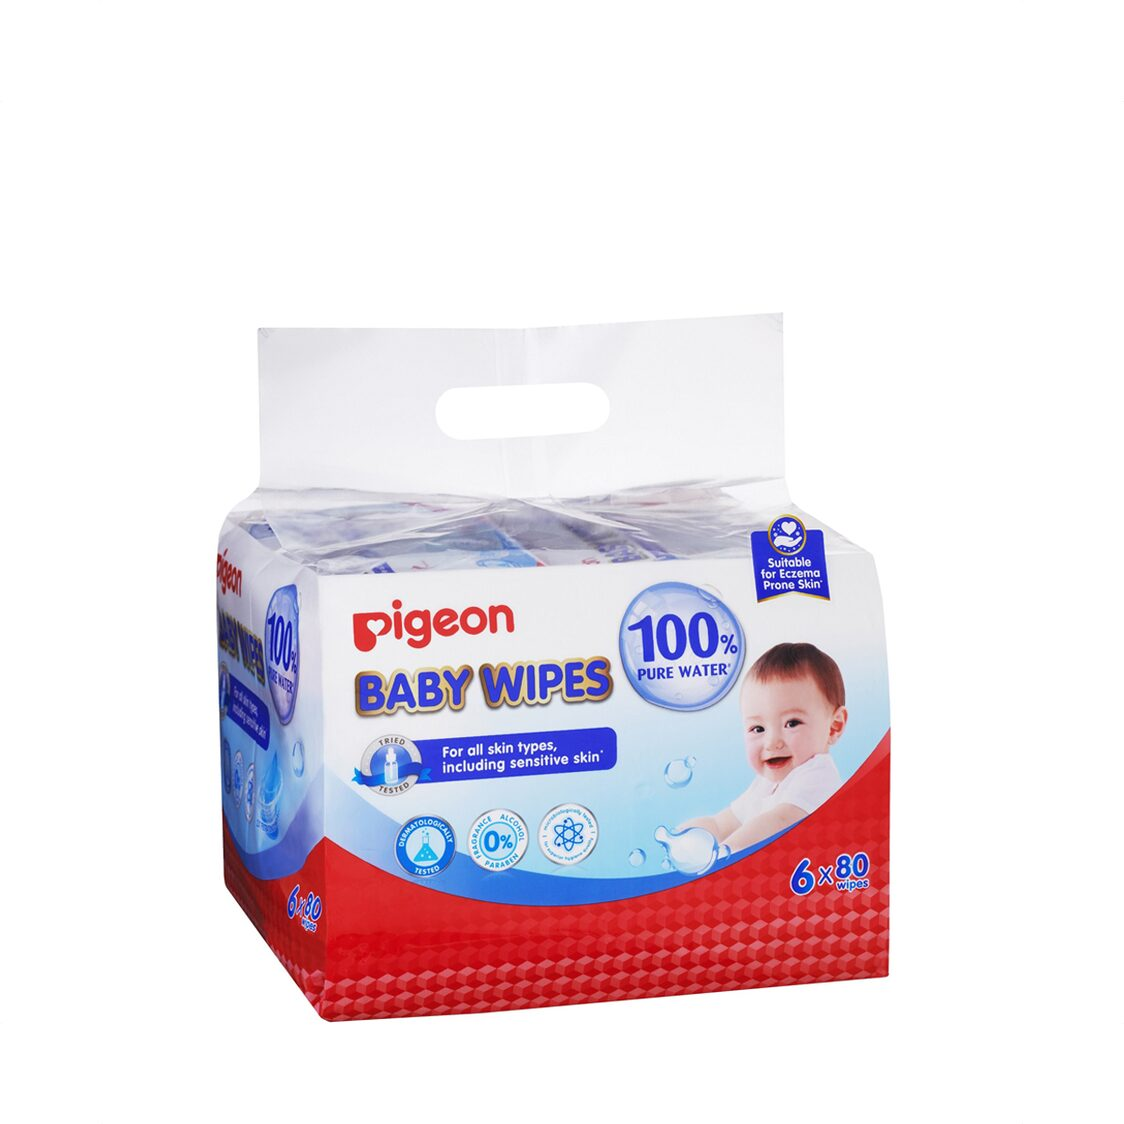 Pigeon Baby Wipes 80 Sheets 100 Pure Water 6 In 1